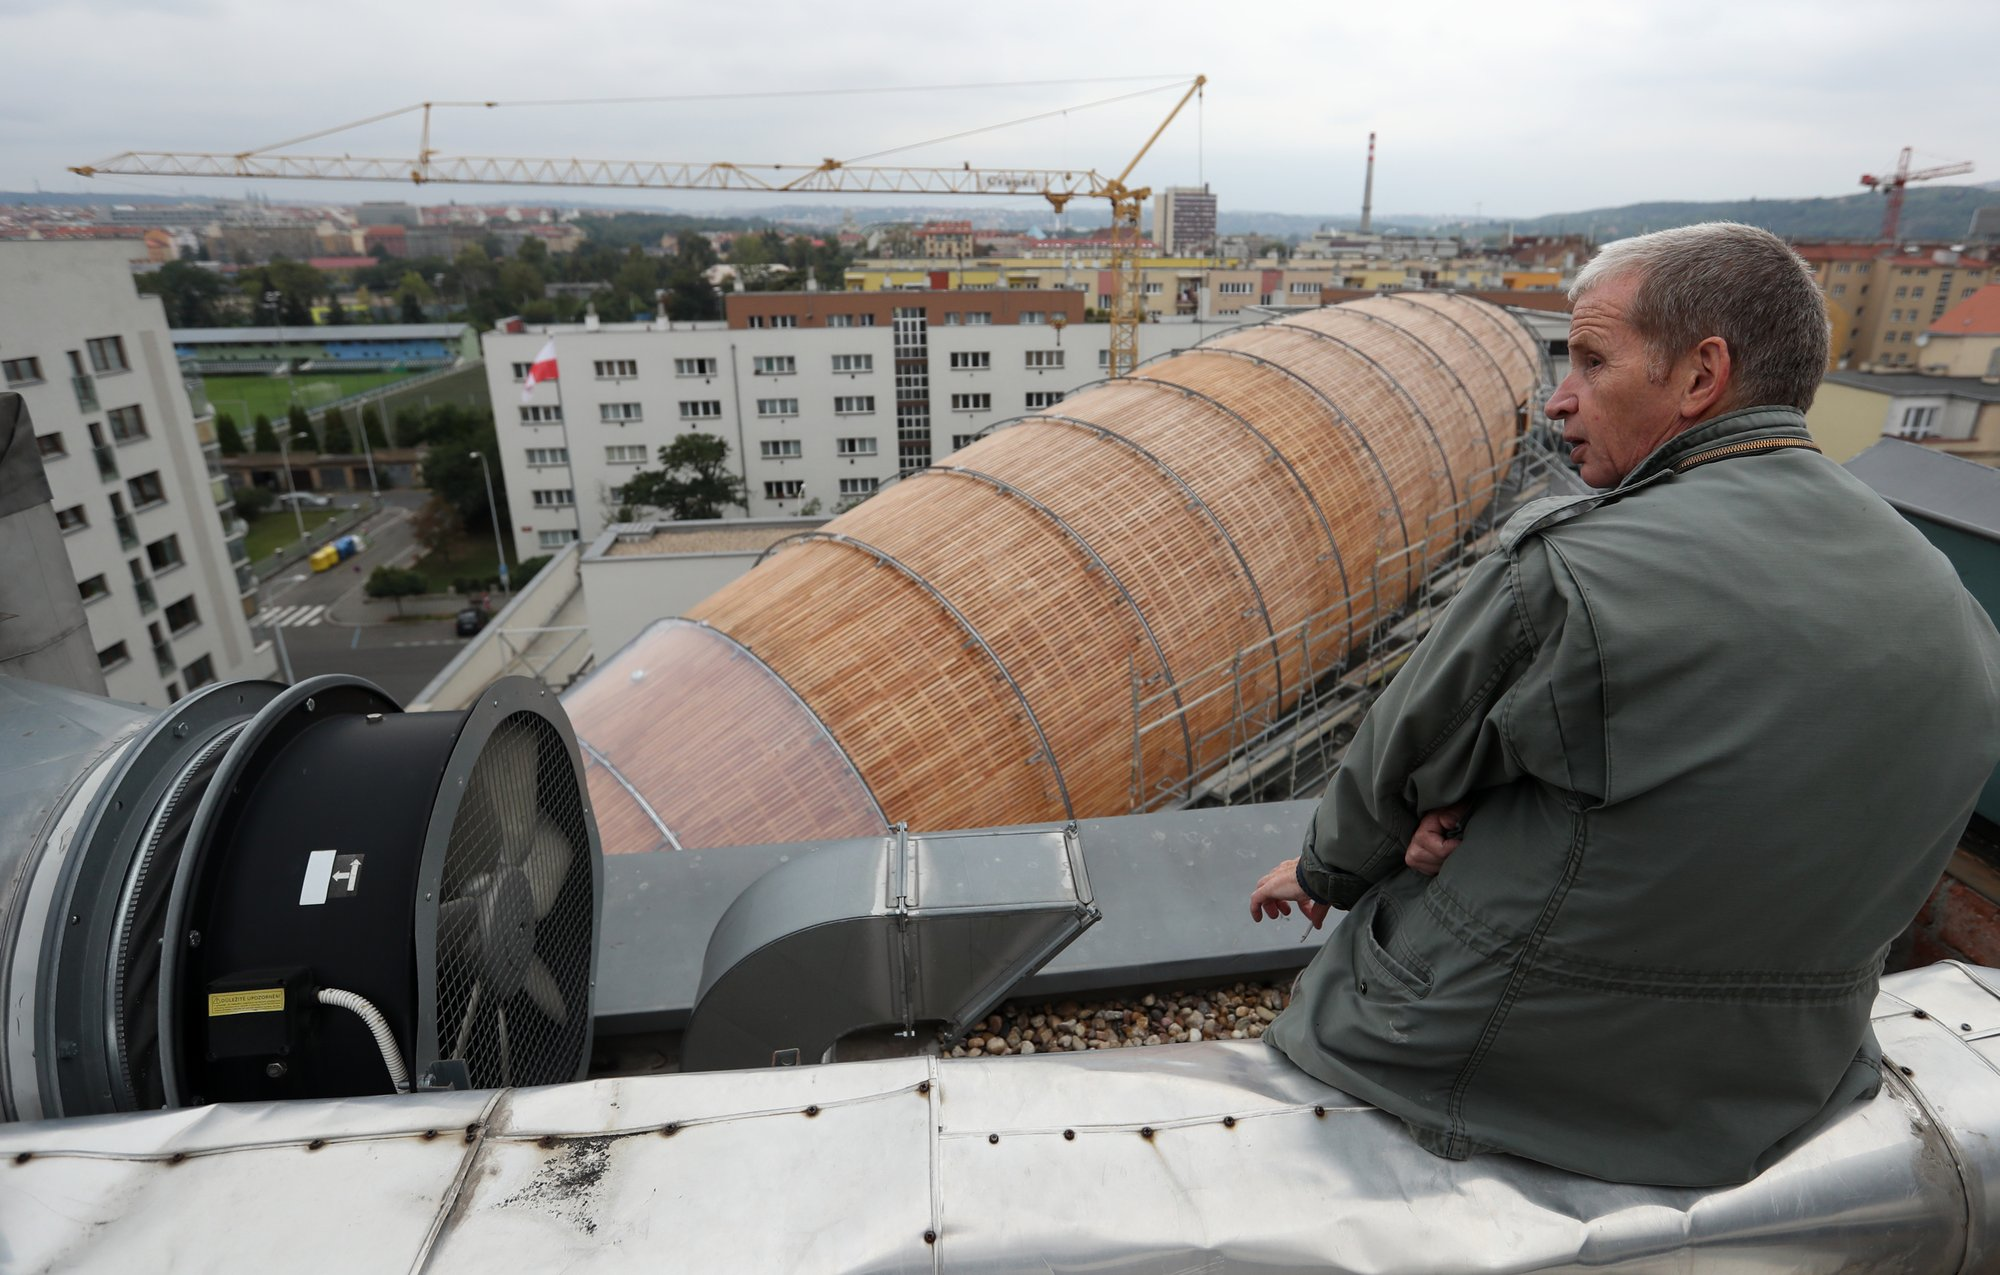 Czech center builds giant 'airship' for literature